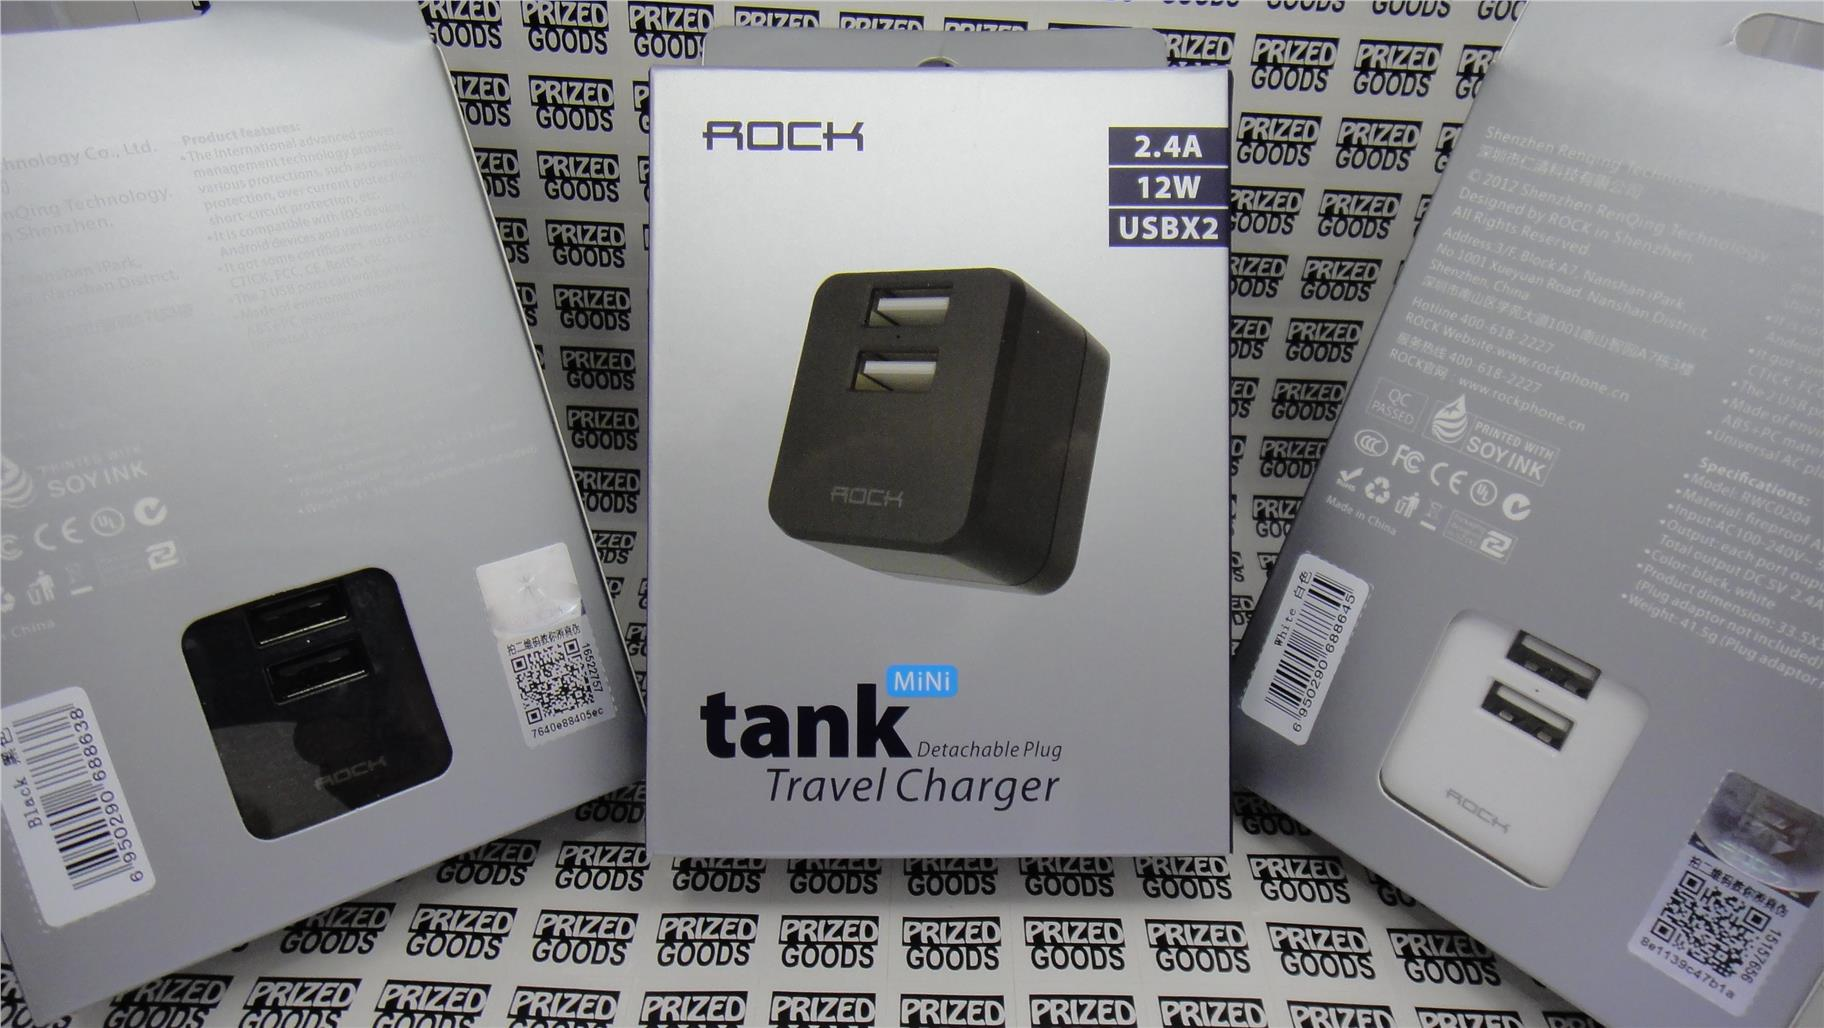 ROCK Dual USB 2.4A output Mini Traveller Charger